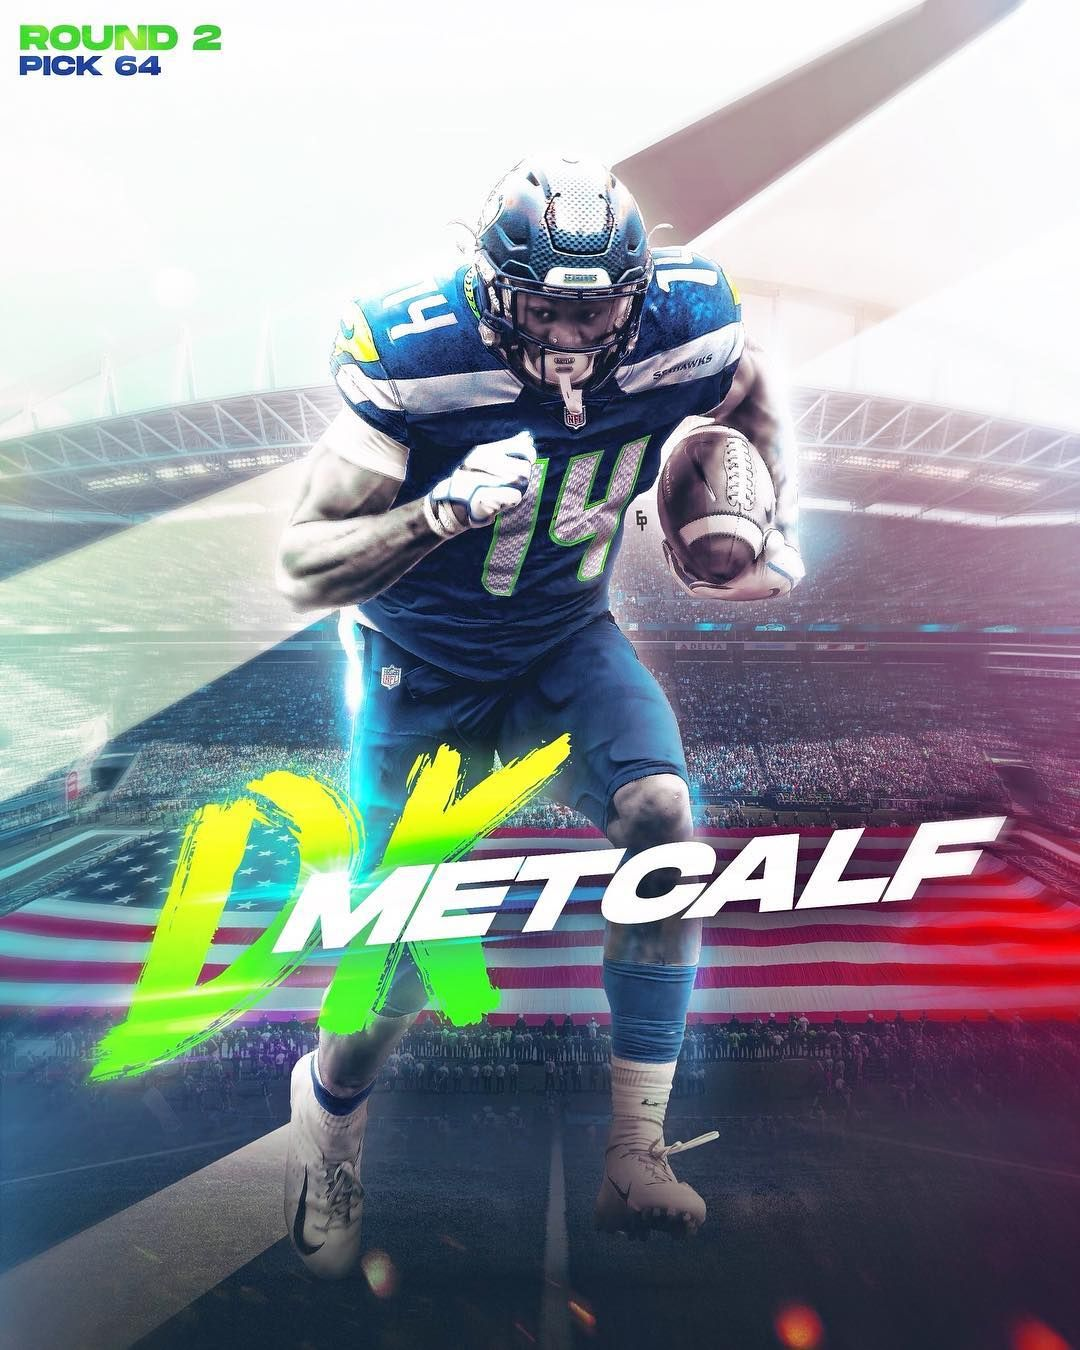 Enrique Castellano On Instagram D K Metcalf Is Now A Seattle Seahawk After Falling Drastically In The D Nfl Football Art Nfl Seahawks Nfl Football Wallpaper